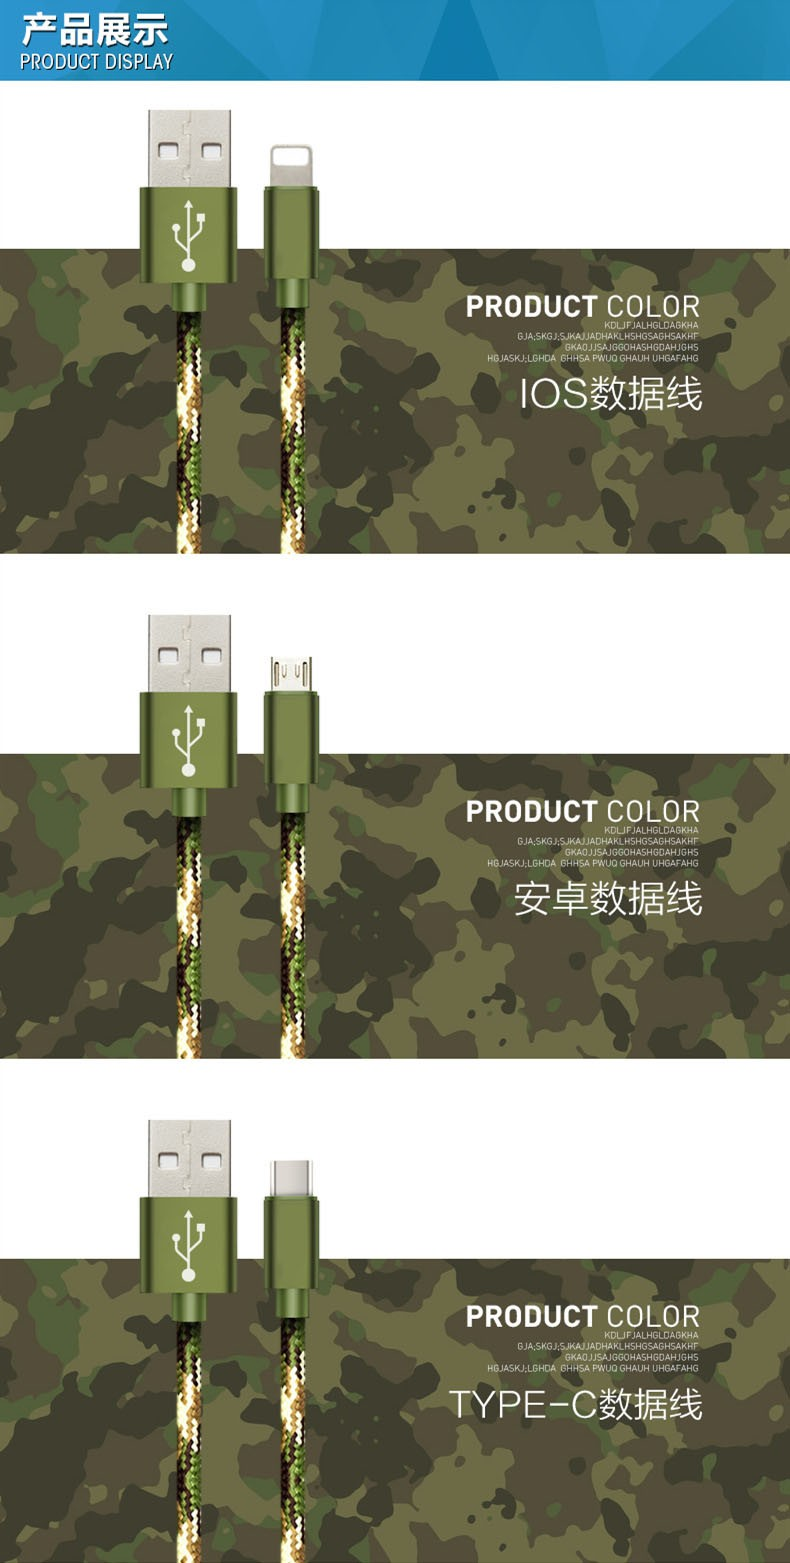 PuJi USB Type-C Cable USB 3.1 Type C USB Data Sync Charge Cable For nexus 5x 6p OnePlus 2 ZUK Z1 xiaomi 4c 5 MX5 Pro